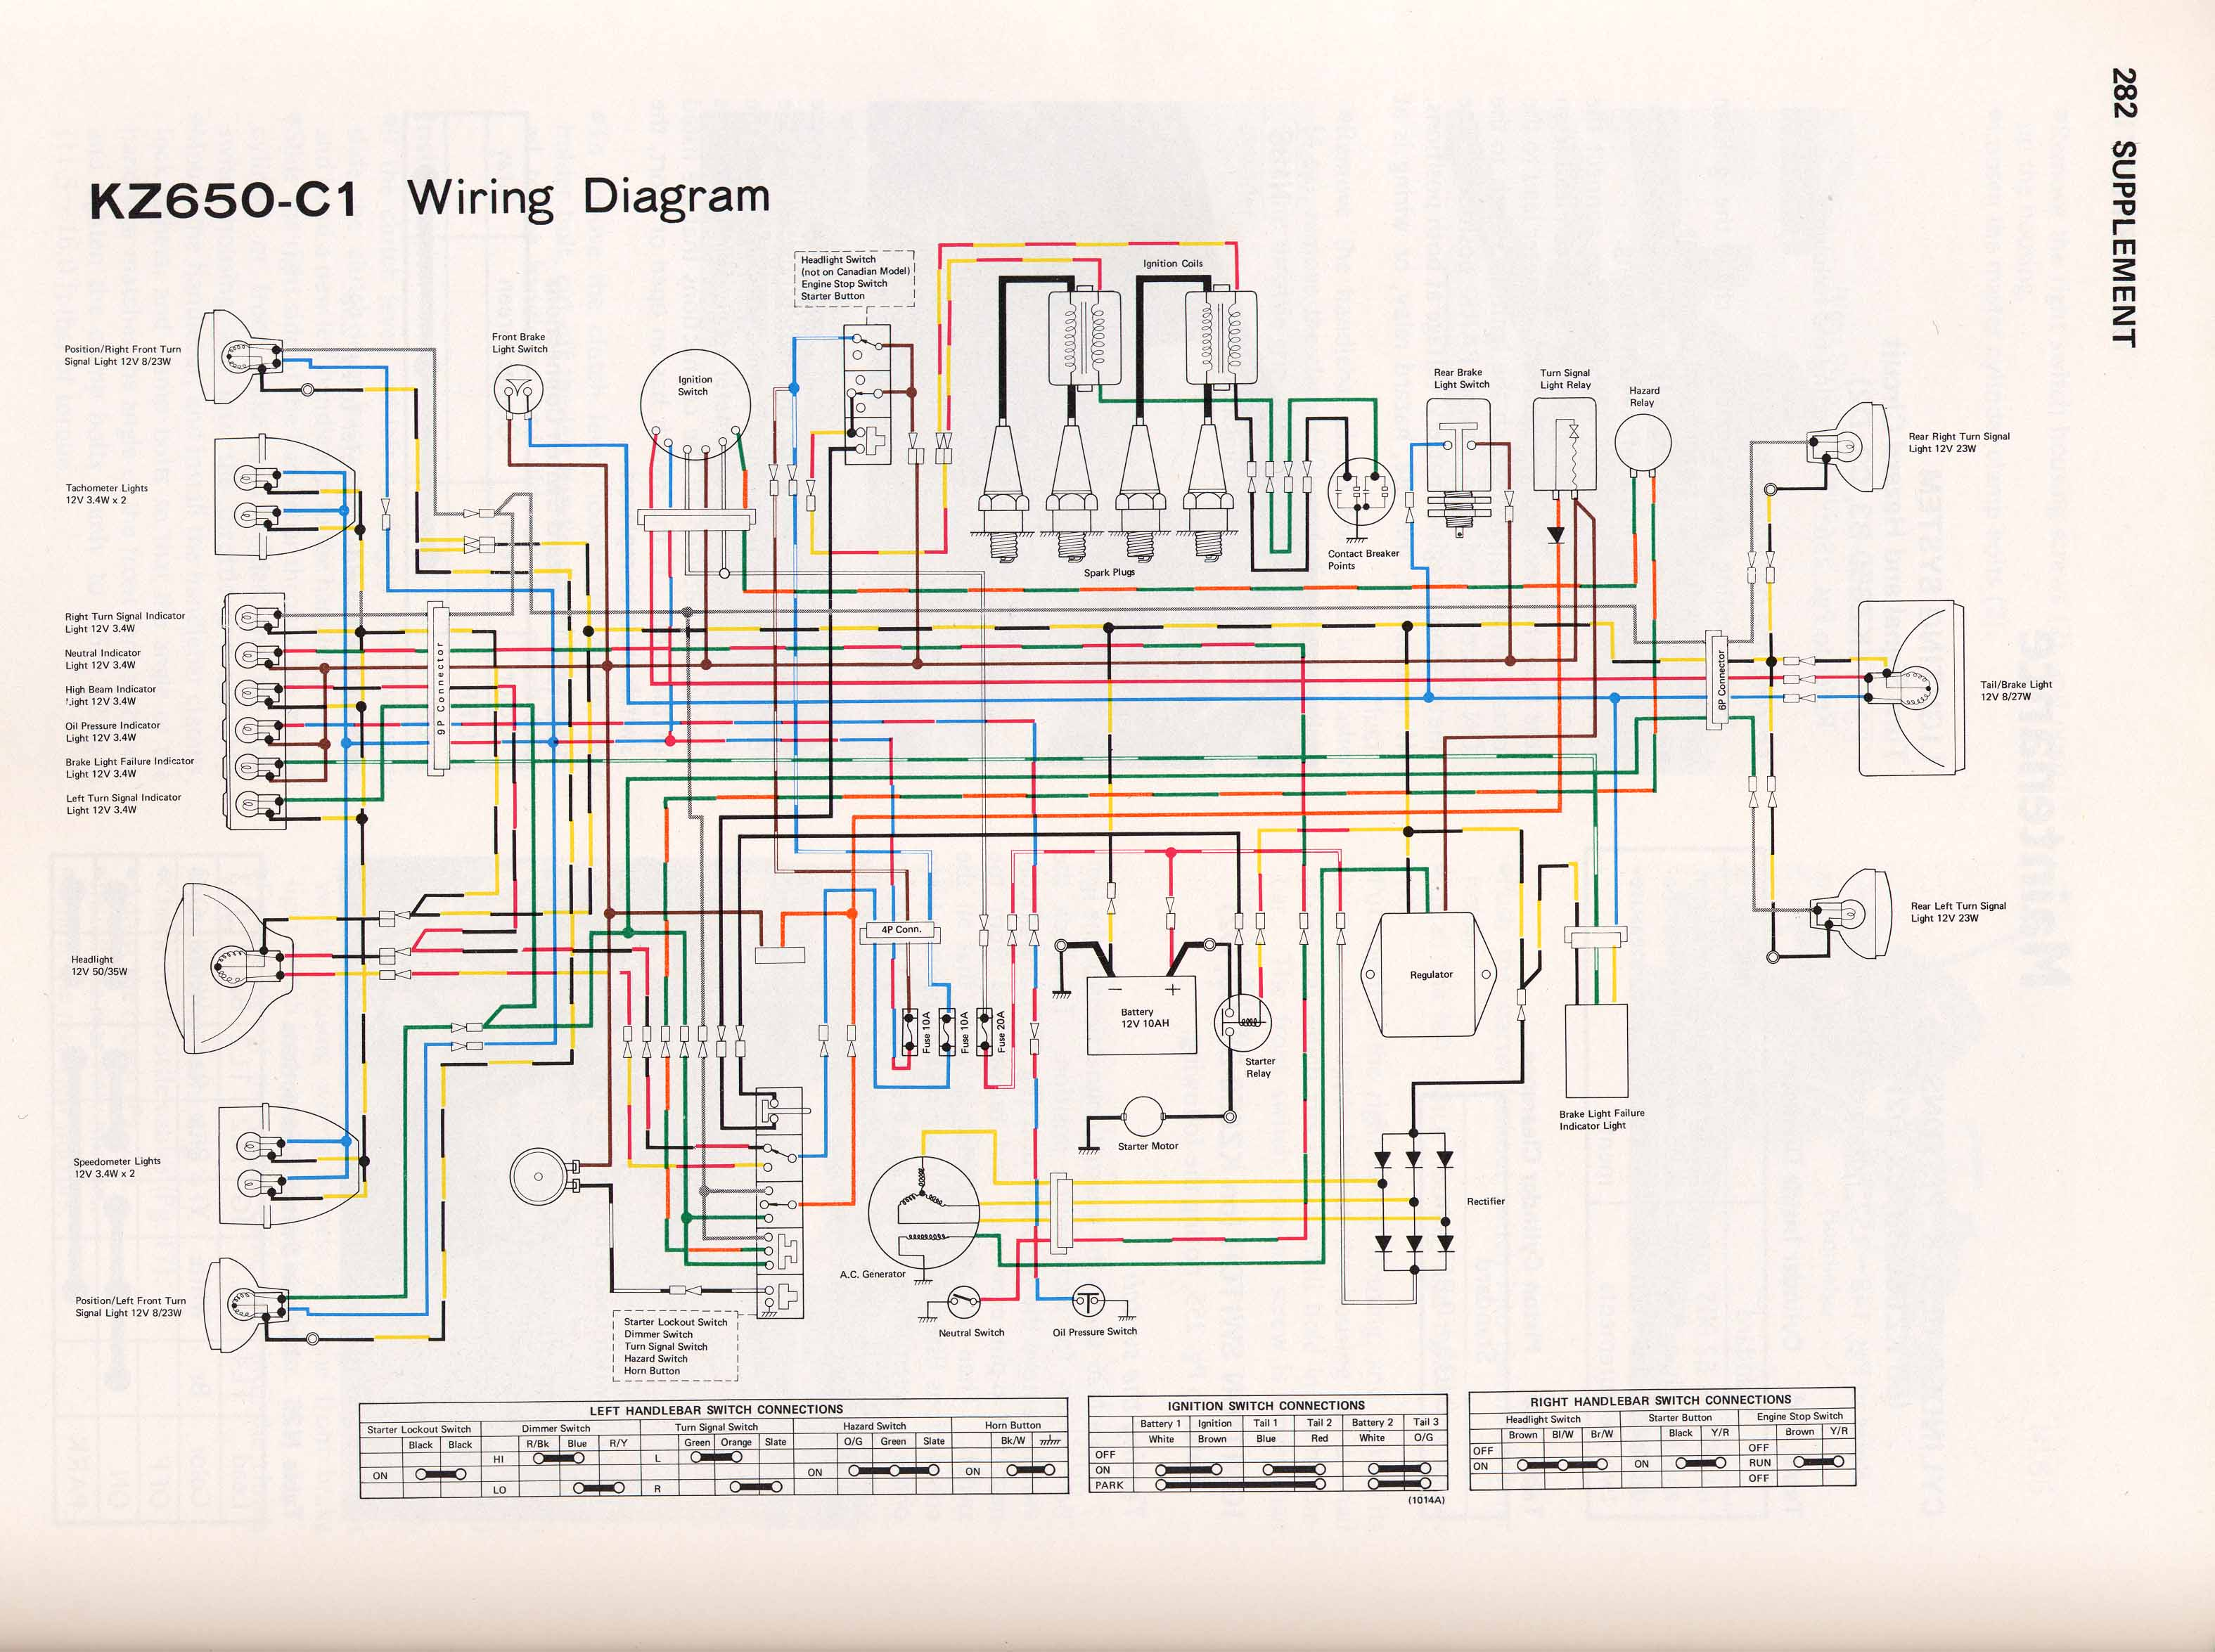 KZ650 C1 kz650 info wiring diagrams 1978 ford wiring harness at arjmand.co